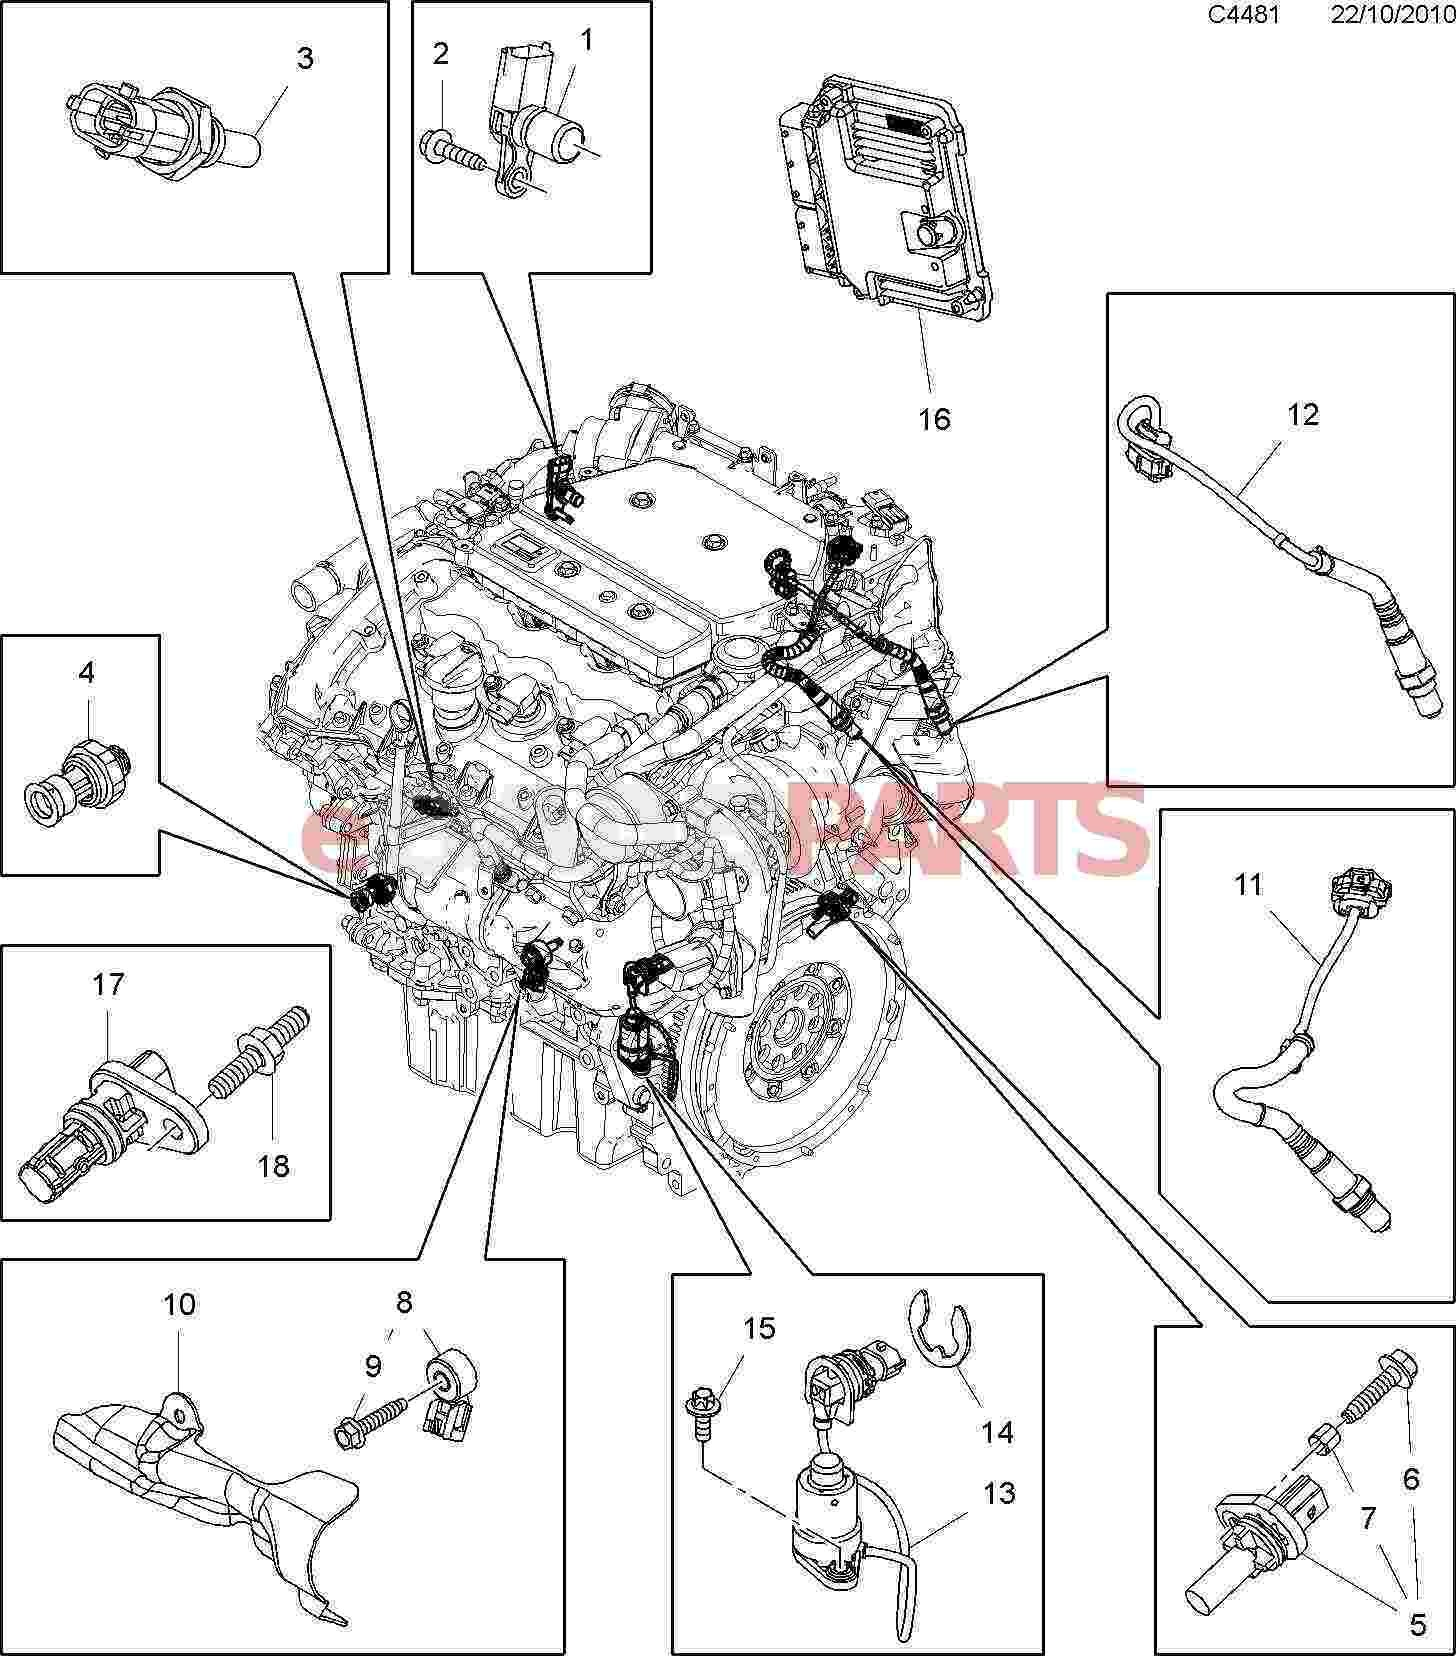 WRG-4699] 2002 Saab 9 5 2 3 Engine Diagram on